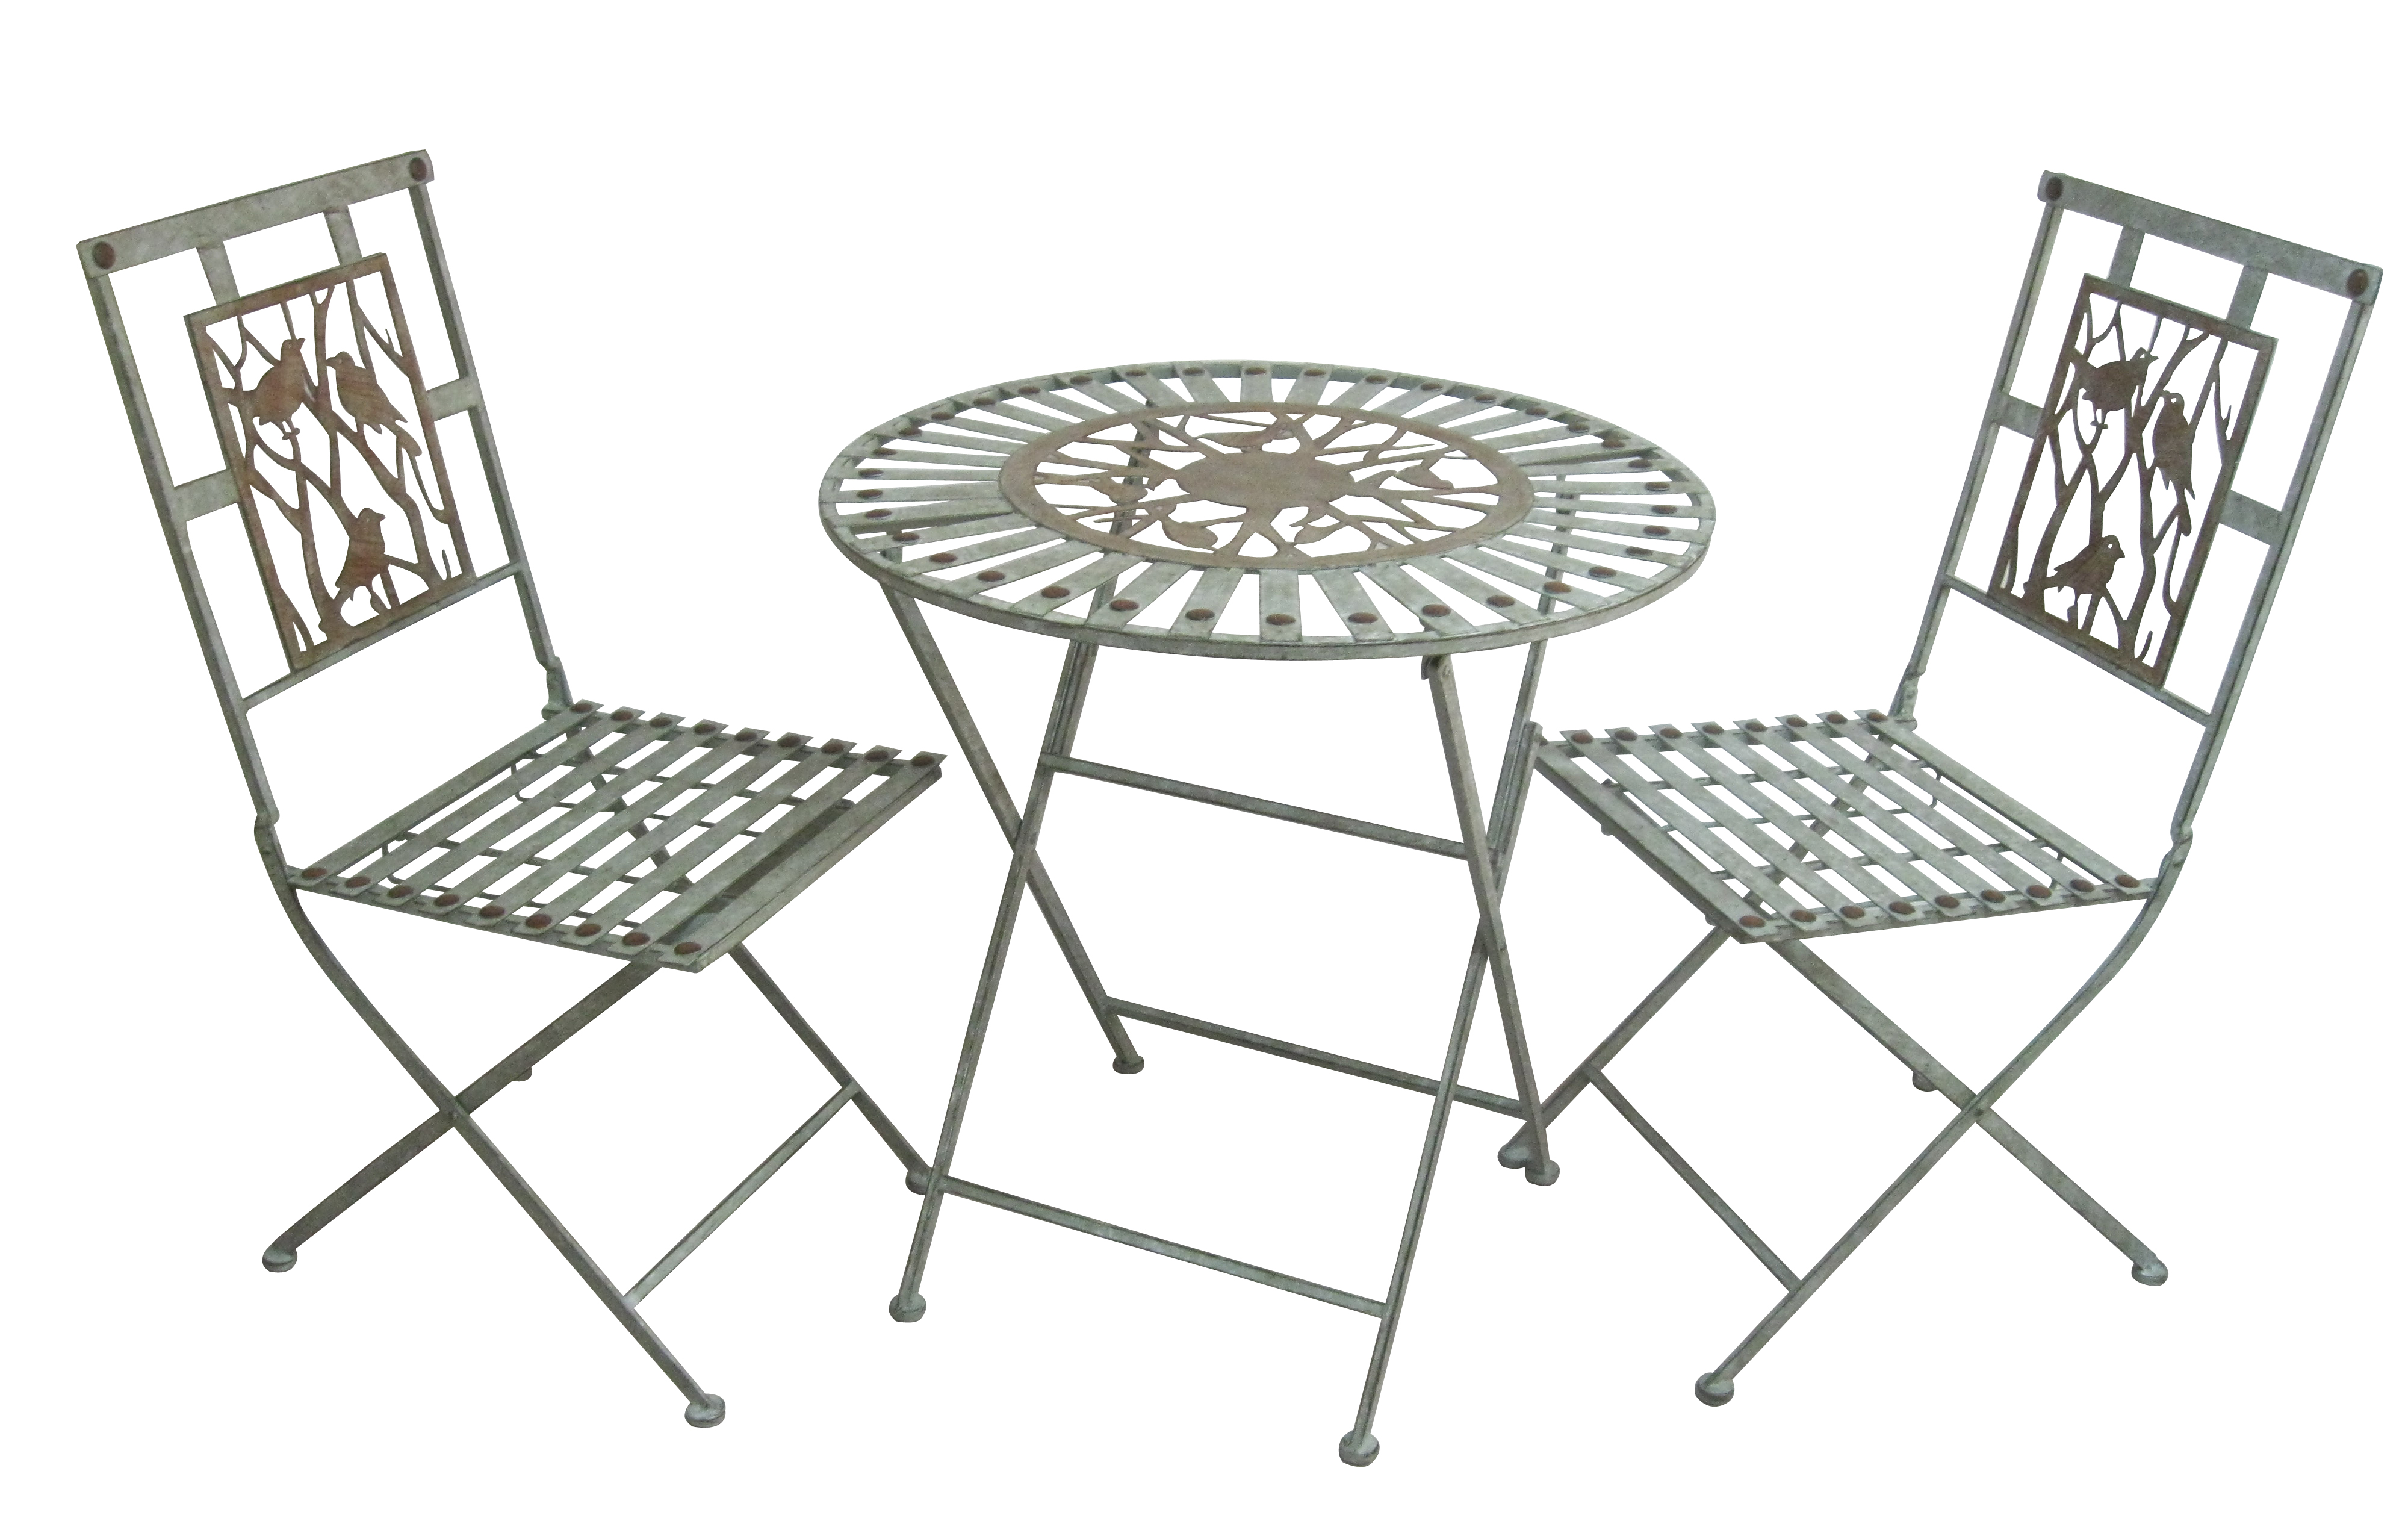 Birds On Branches Bistro Set (1 Table And 2 Chairs) by Benzara